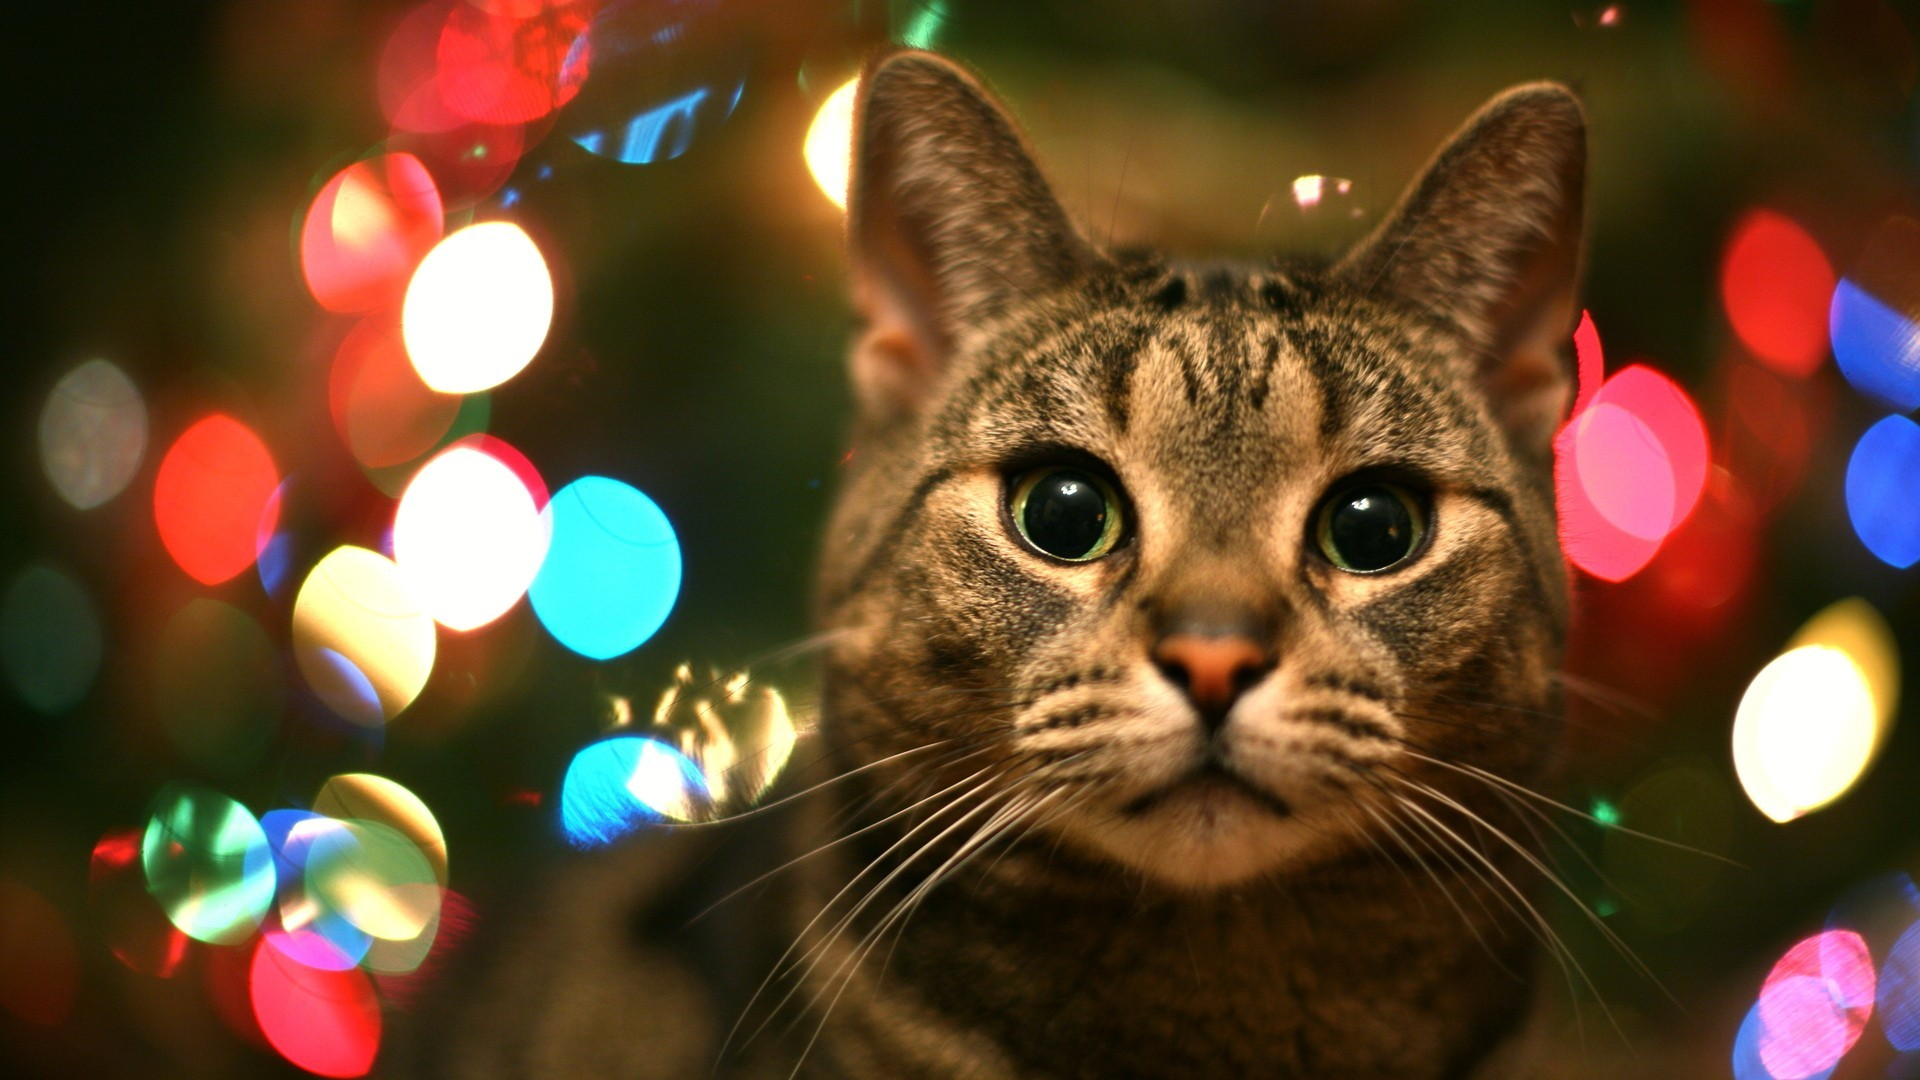 1920x1080 cat in christmas lights in high resolution for free get tabby cat